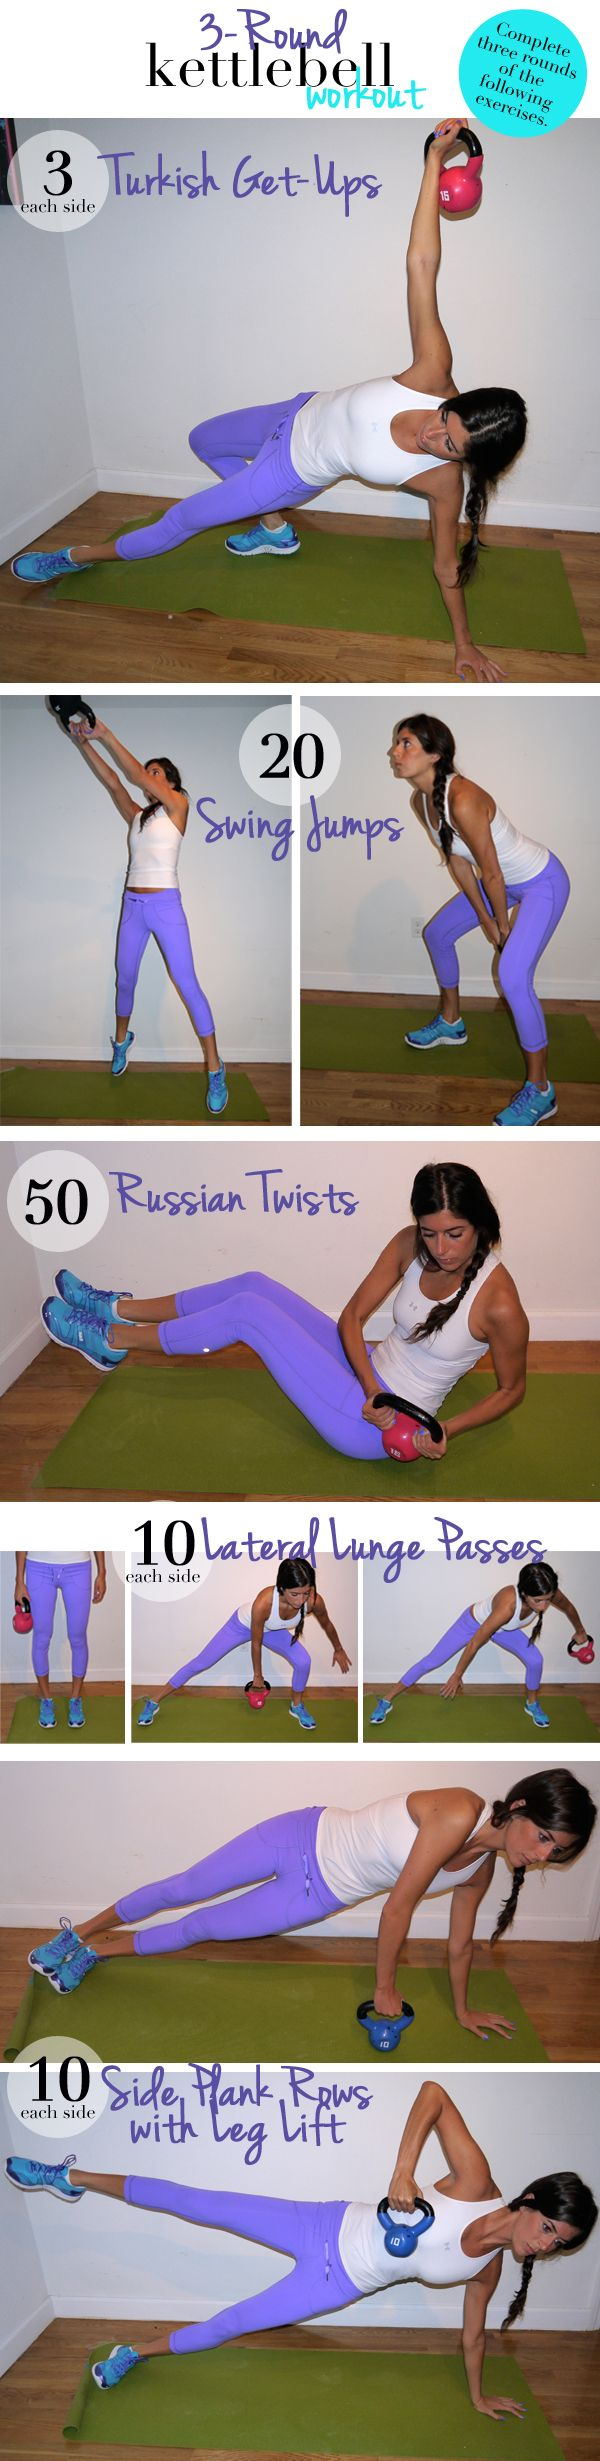 3-Round Kettlebell Workout  You'll go through the following sequence of exercises three times. Depending on your fitness level, it'll take you about 20 minutes.